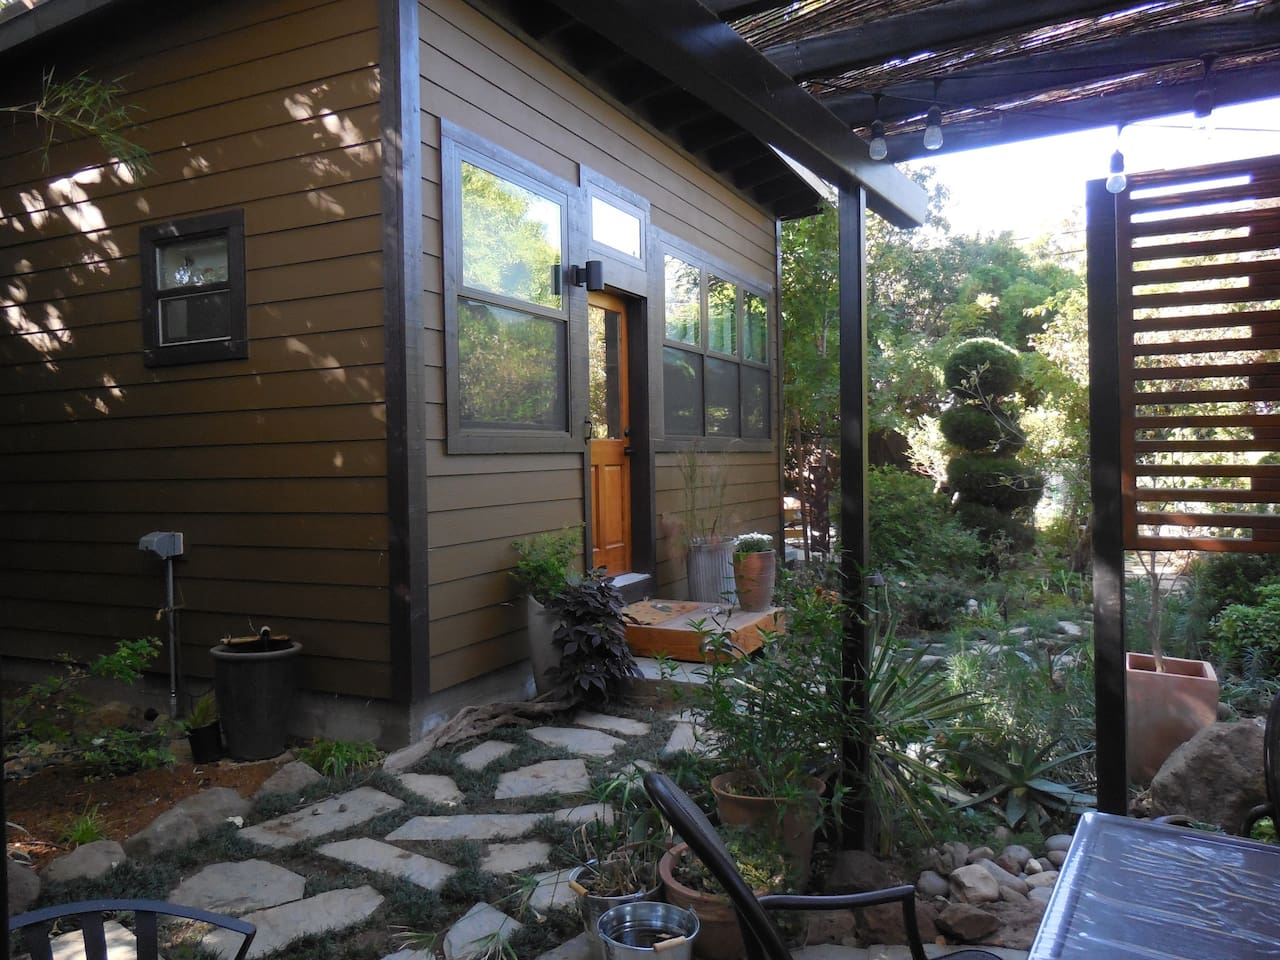 Beautiful Garden Cottage - tiny house, brand new! Snuggled into a large garden.